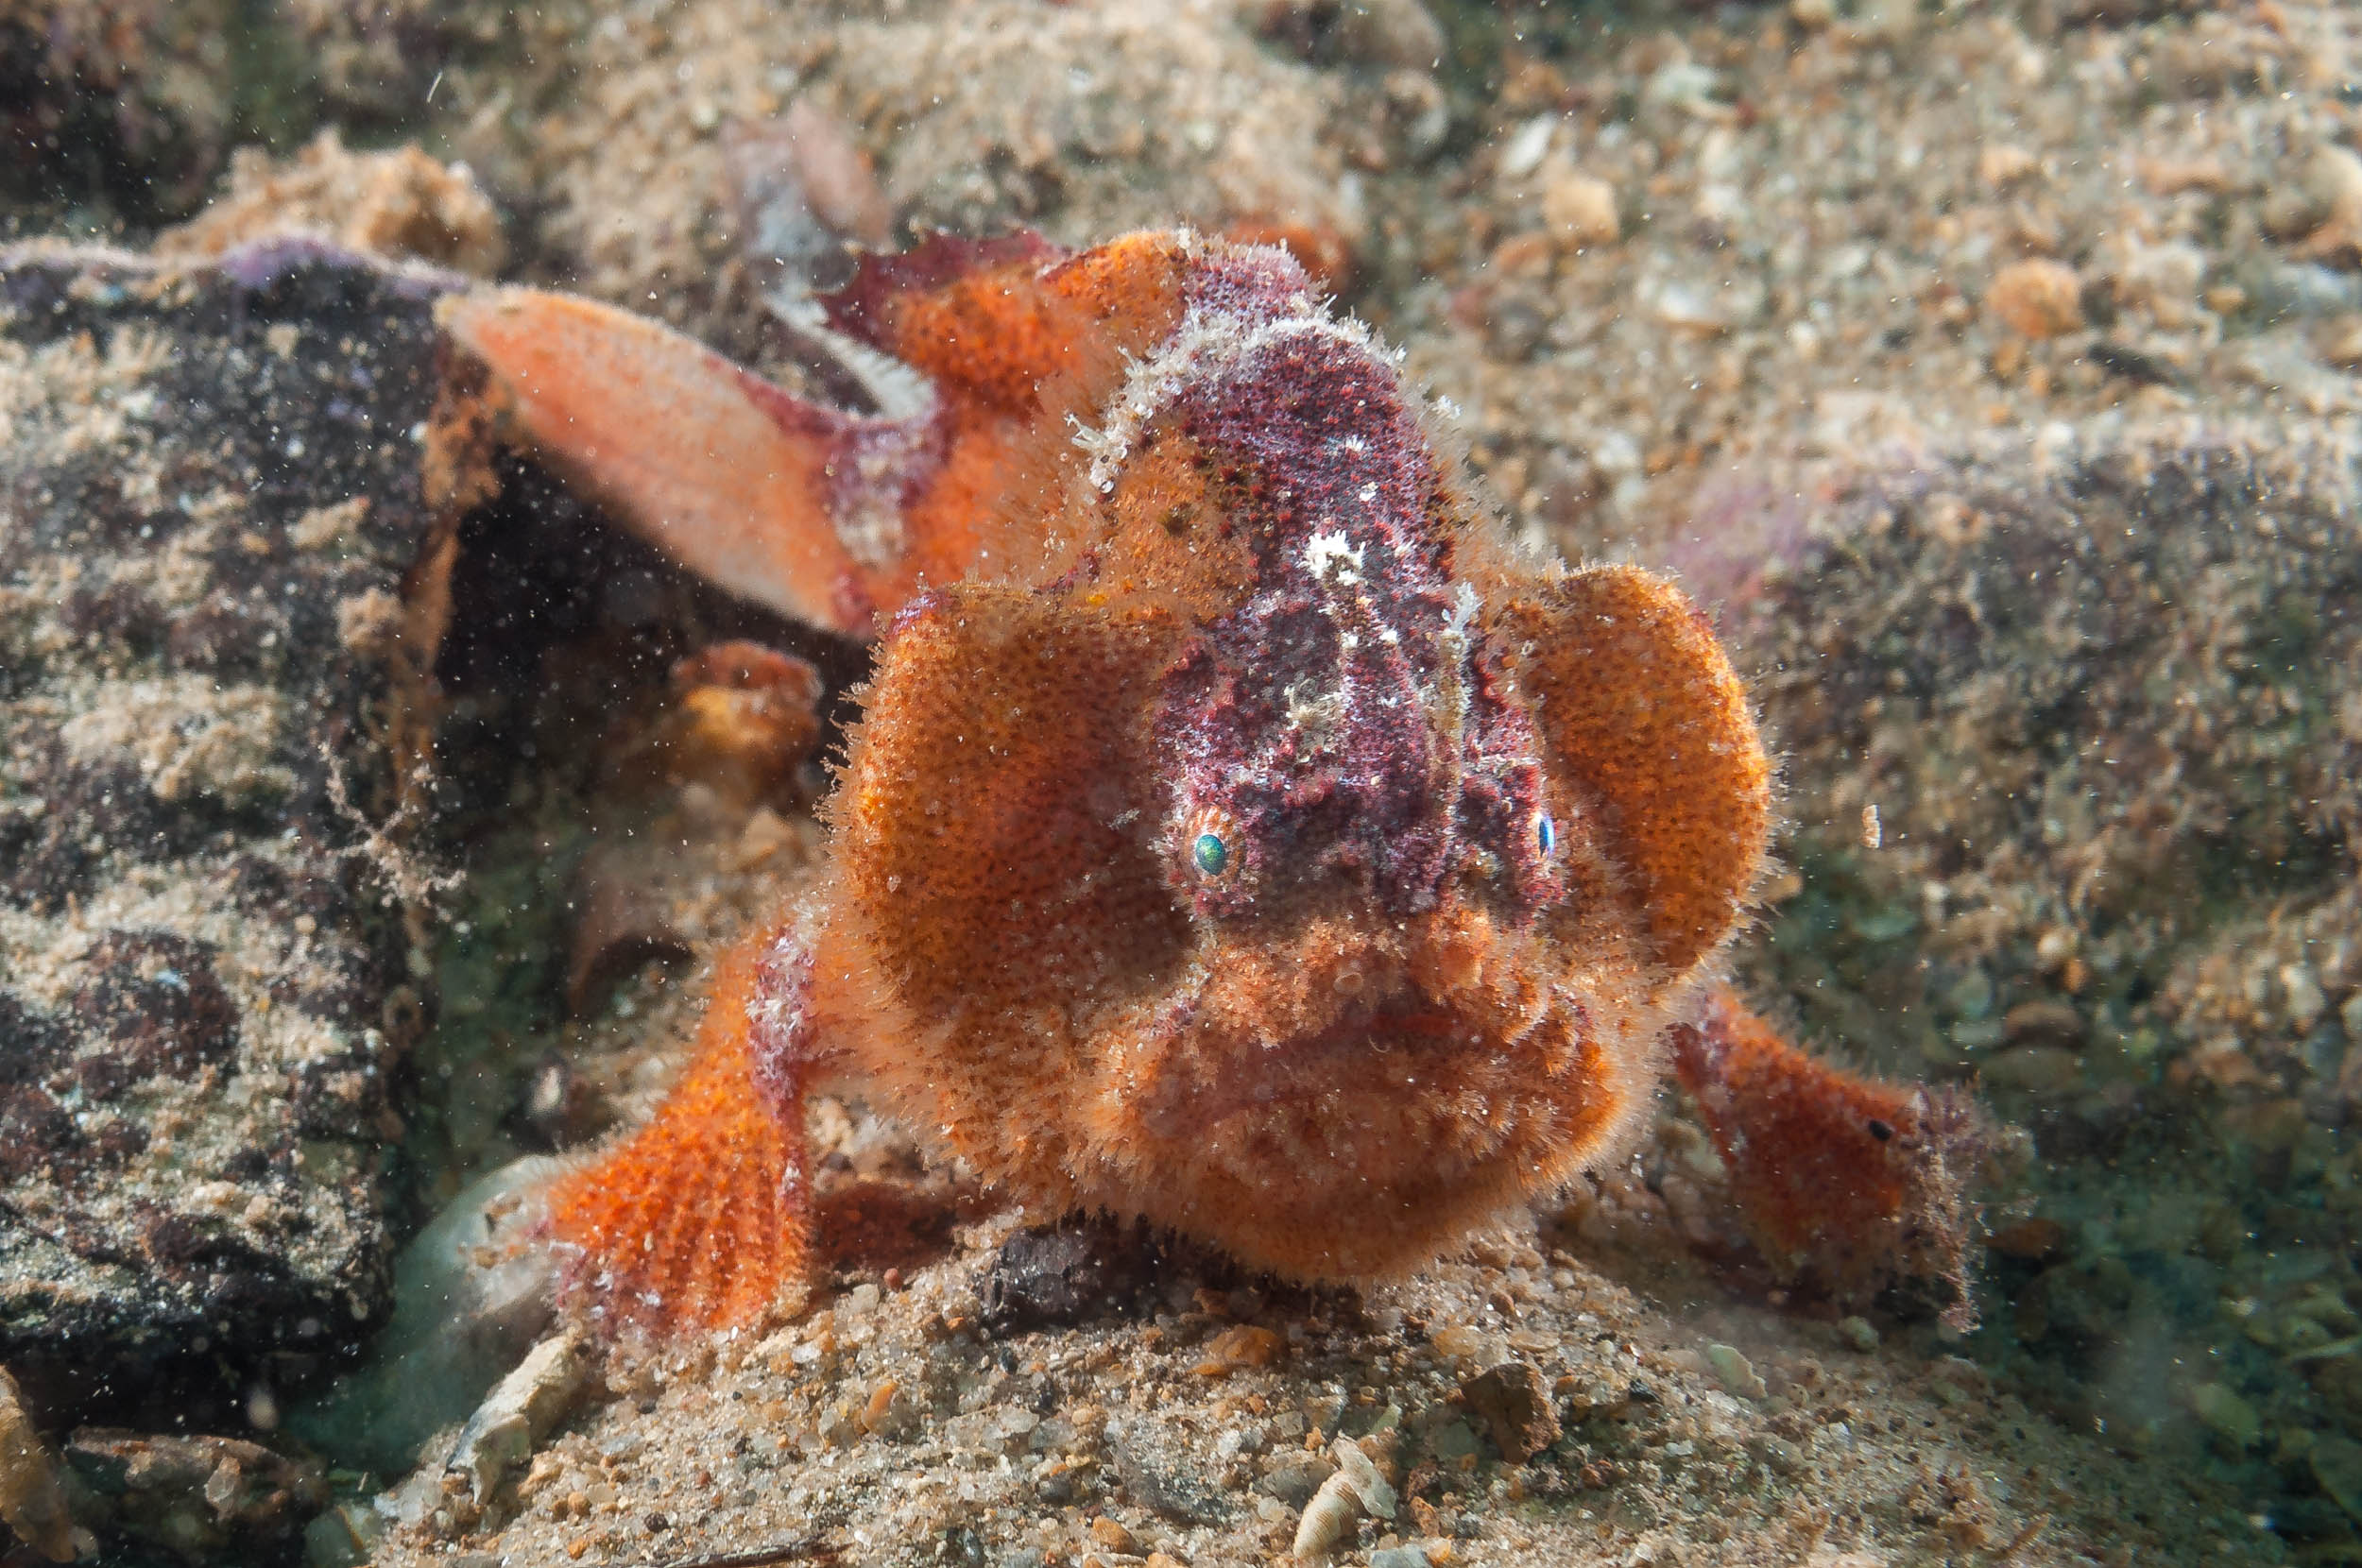 Prickly anglerfish (Echinophryne crassispina)